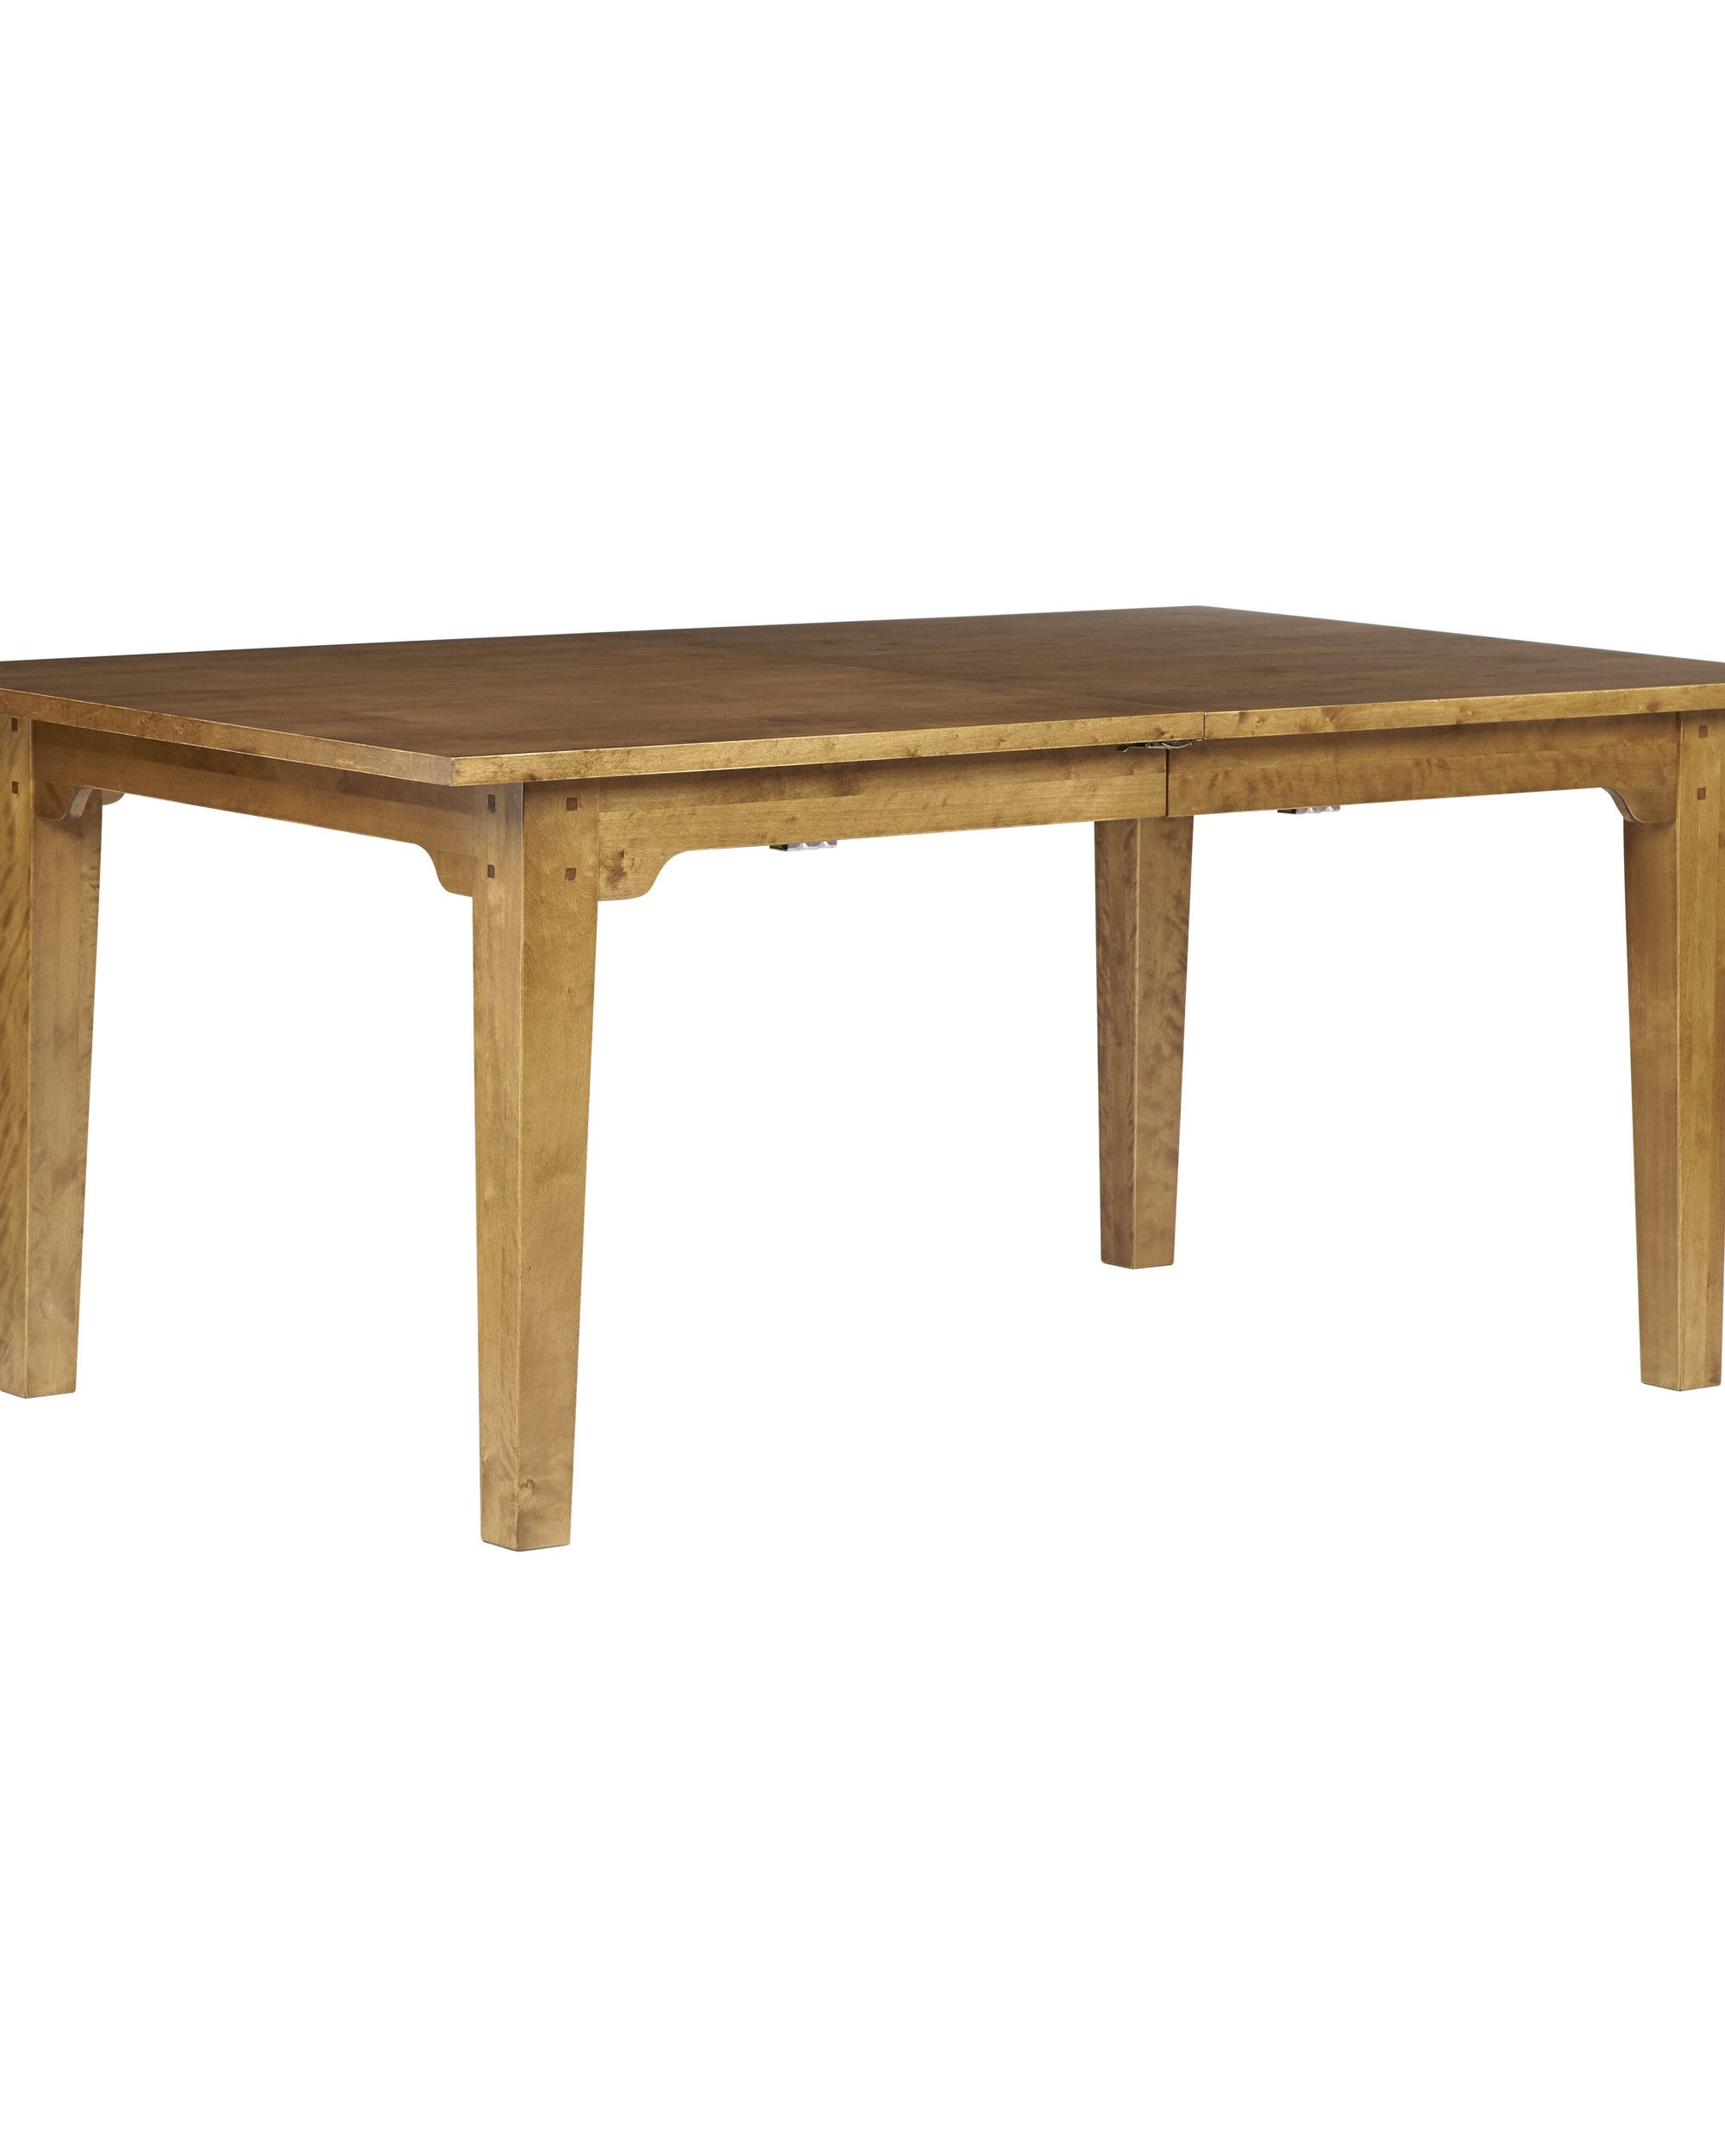 Made to order furniture Garrat Honey Extending Dining